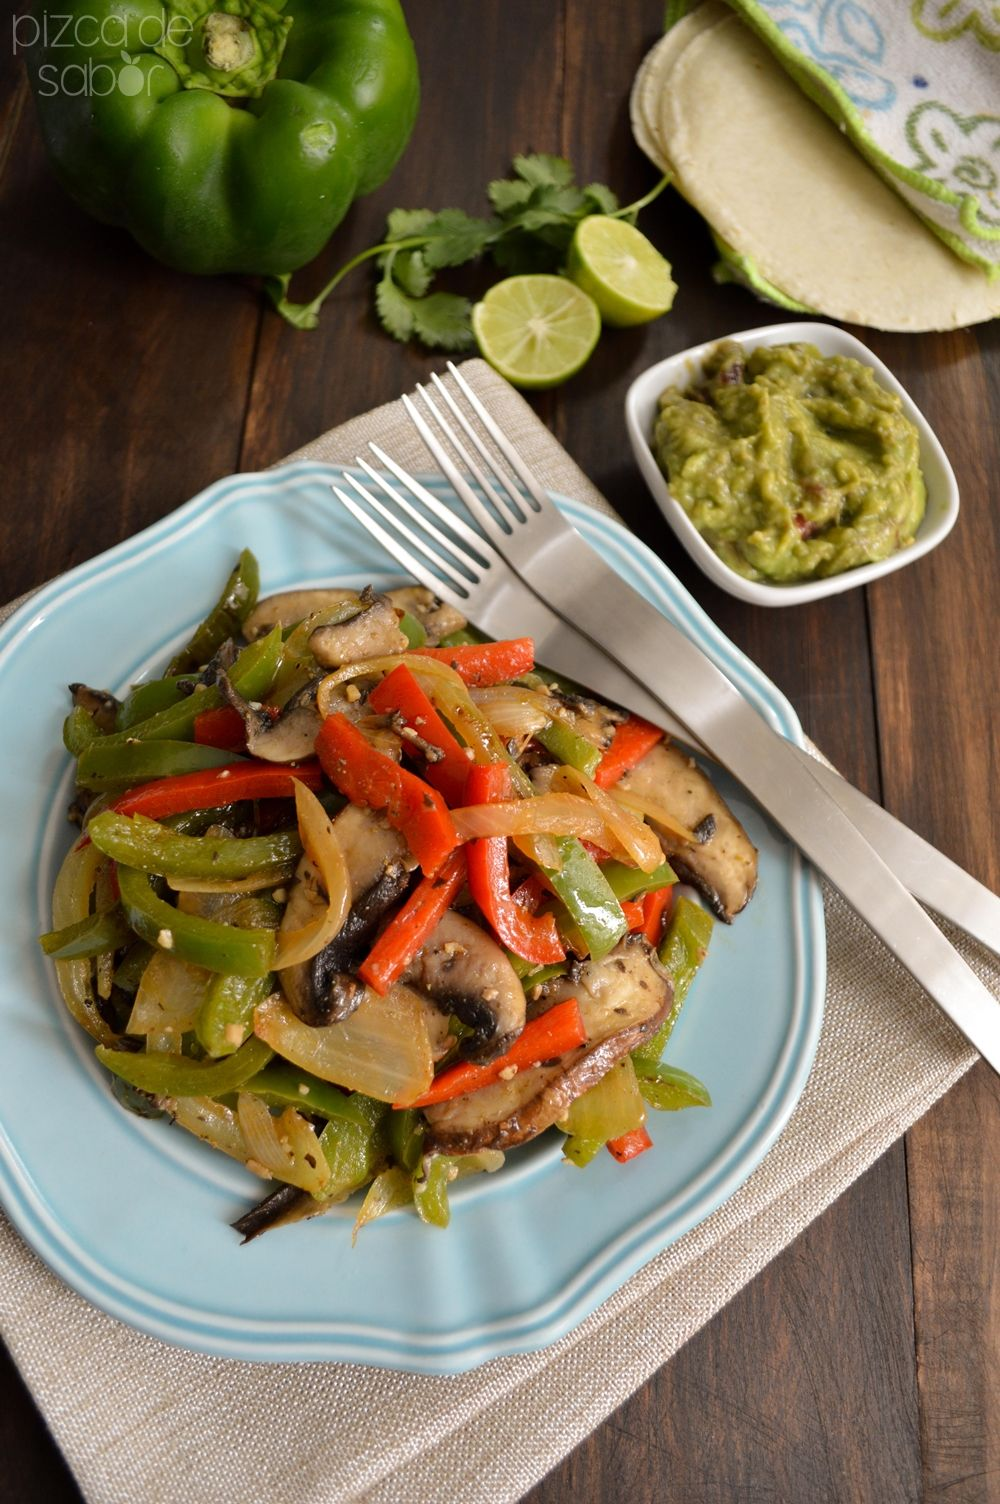 Talk:Fajita - Wikipedia